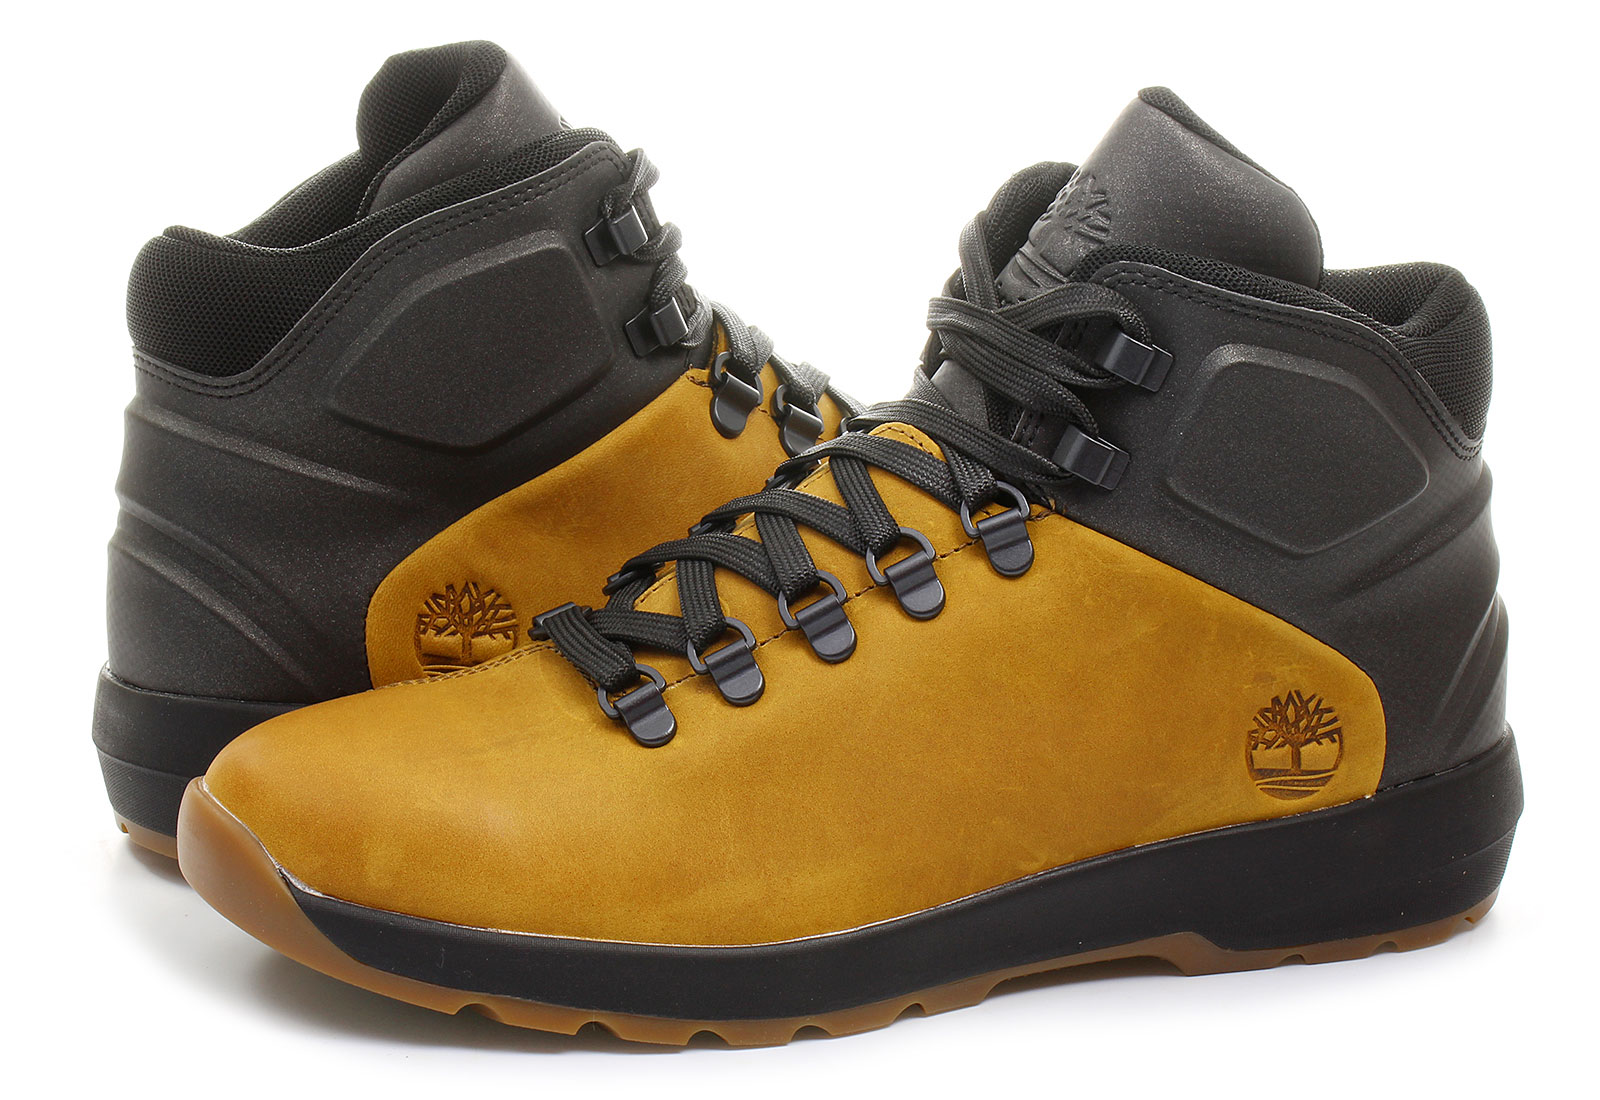 Timberland Boots - Westford Mid - a183b-whe - Online shop for ... a1fc8704b05